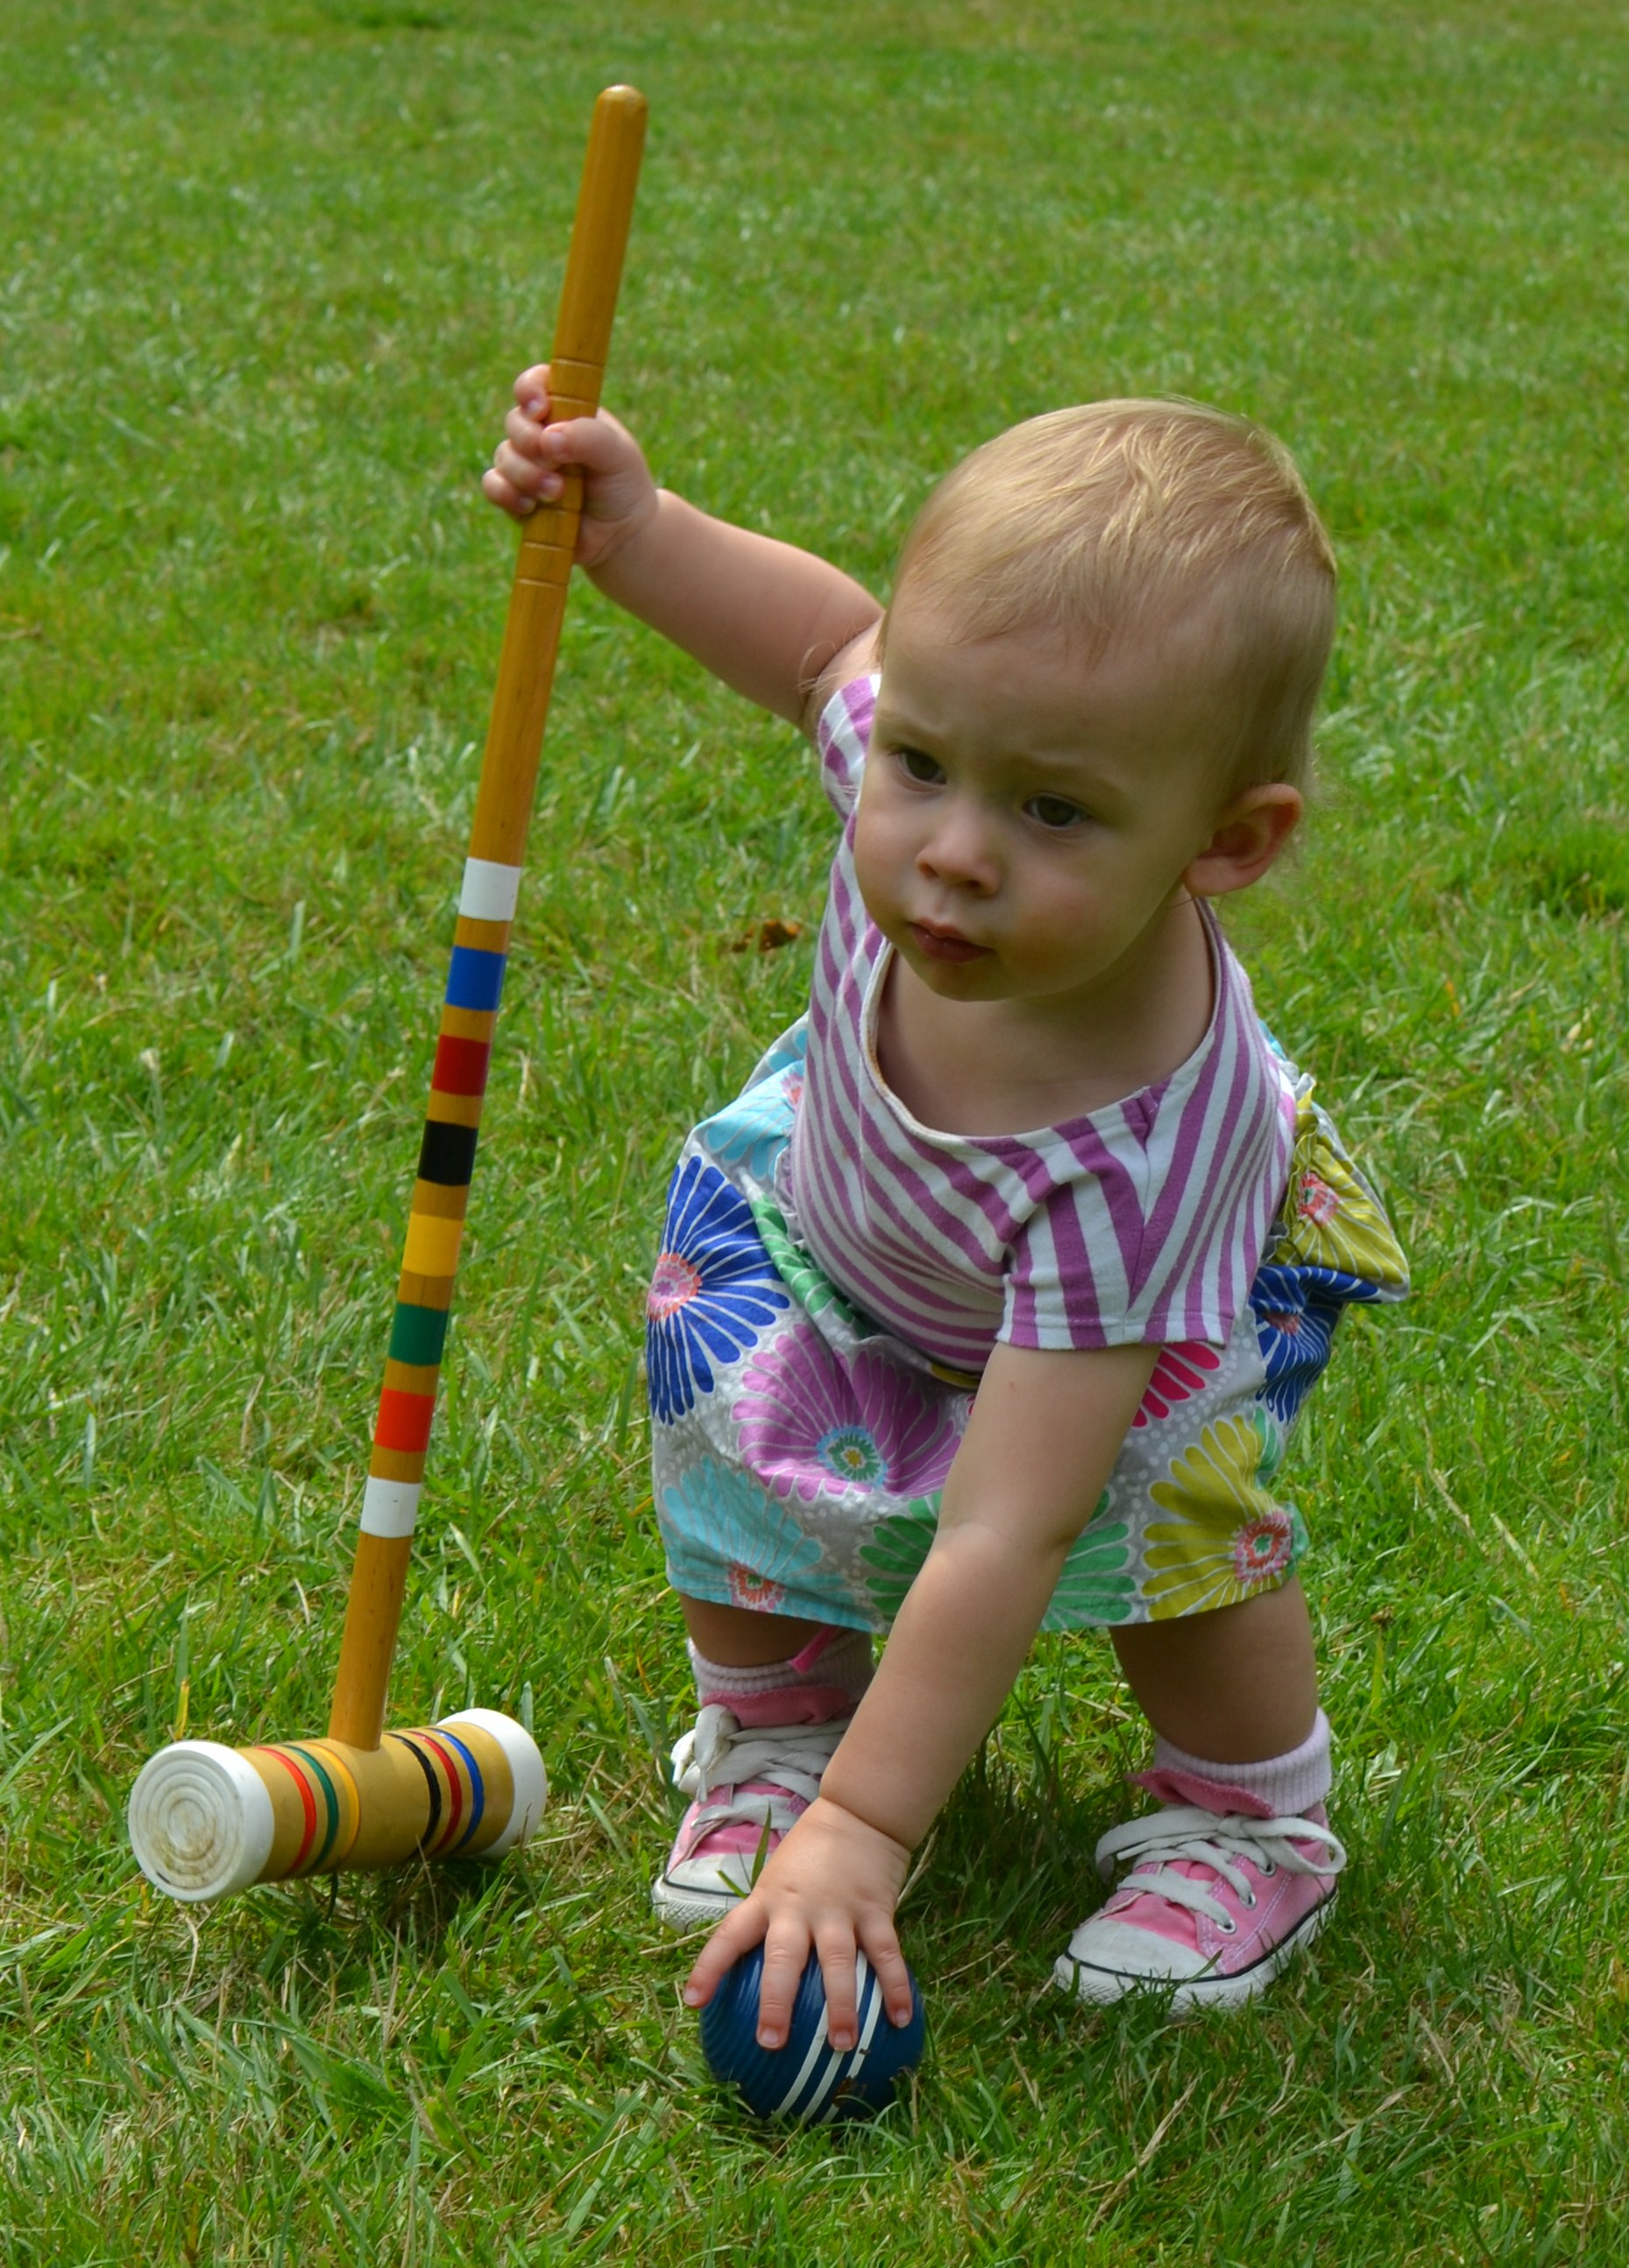 Product spotlight: Croquet anyone?